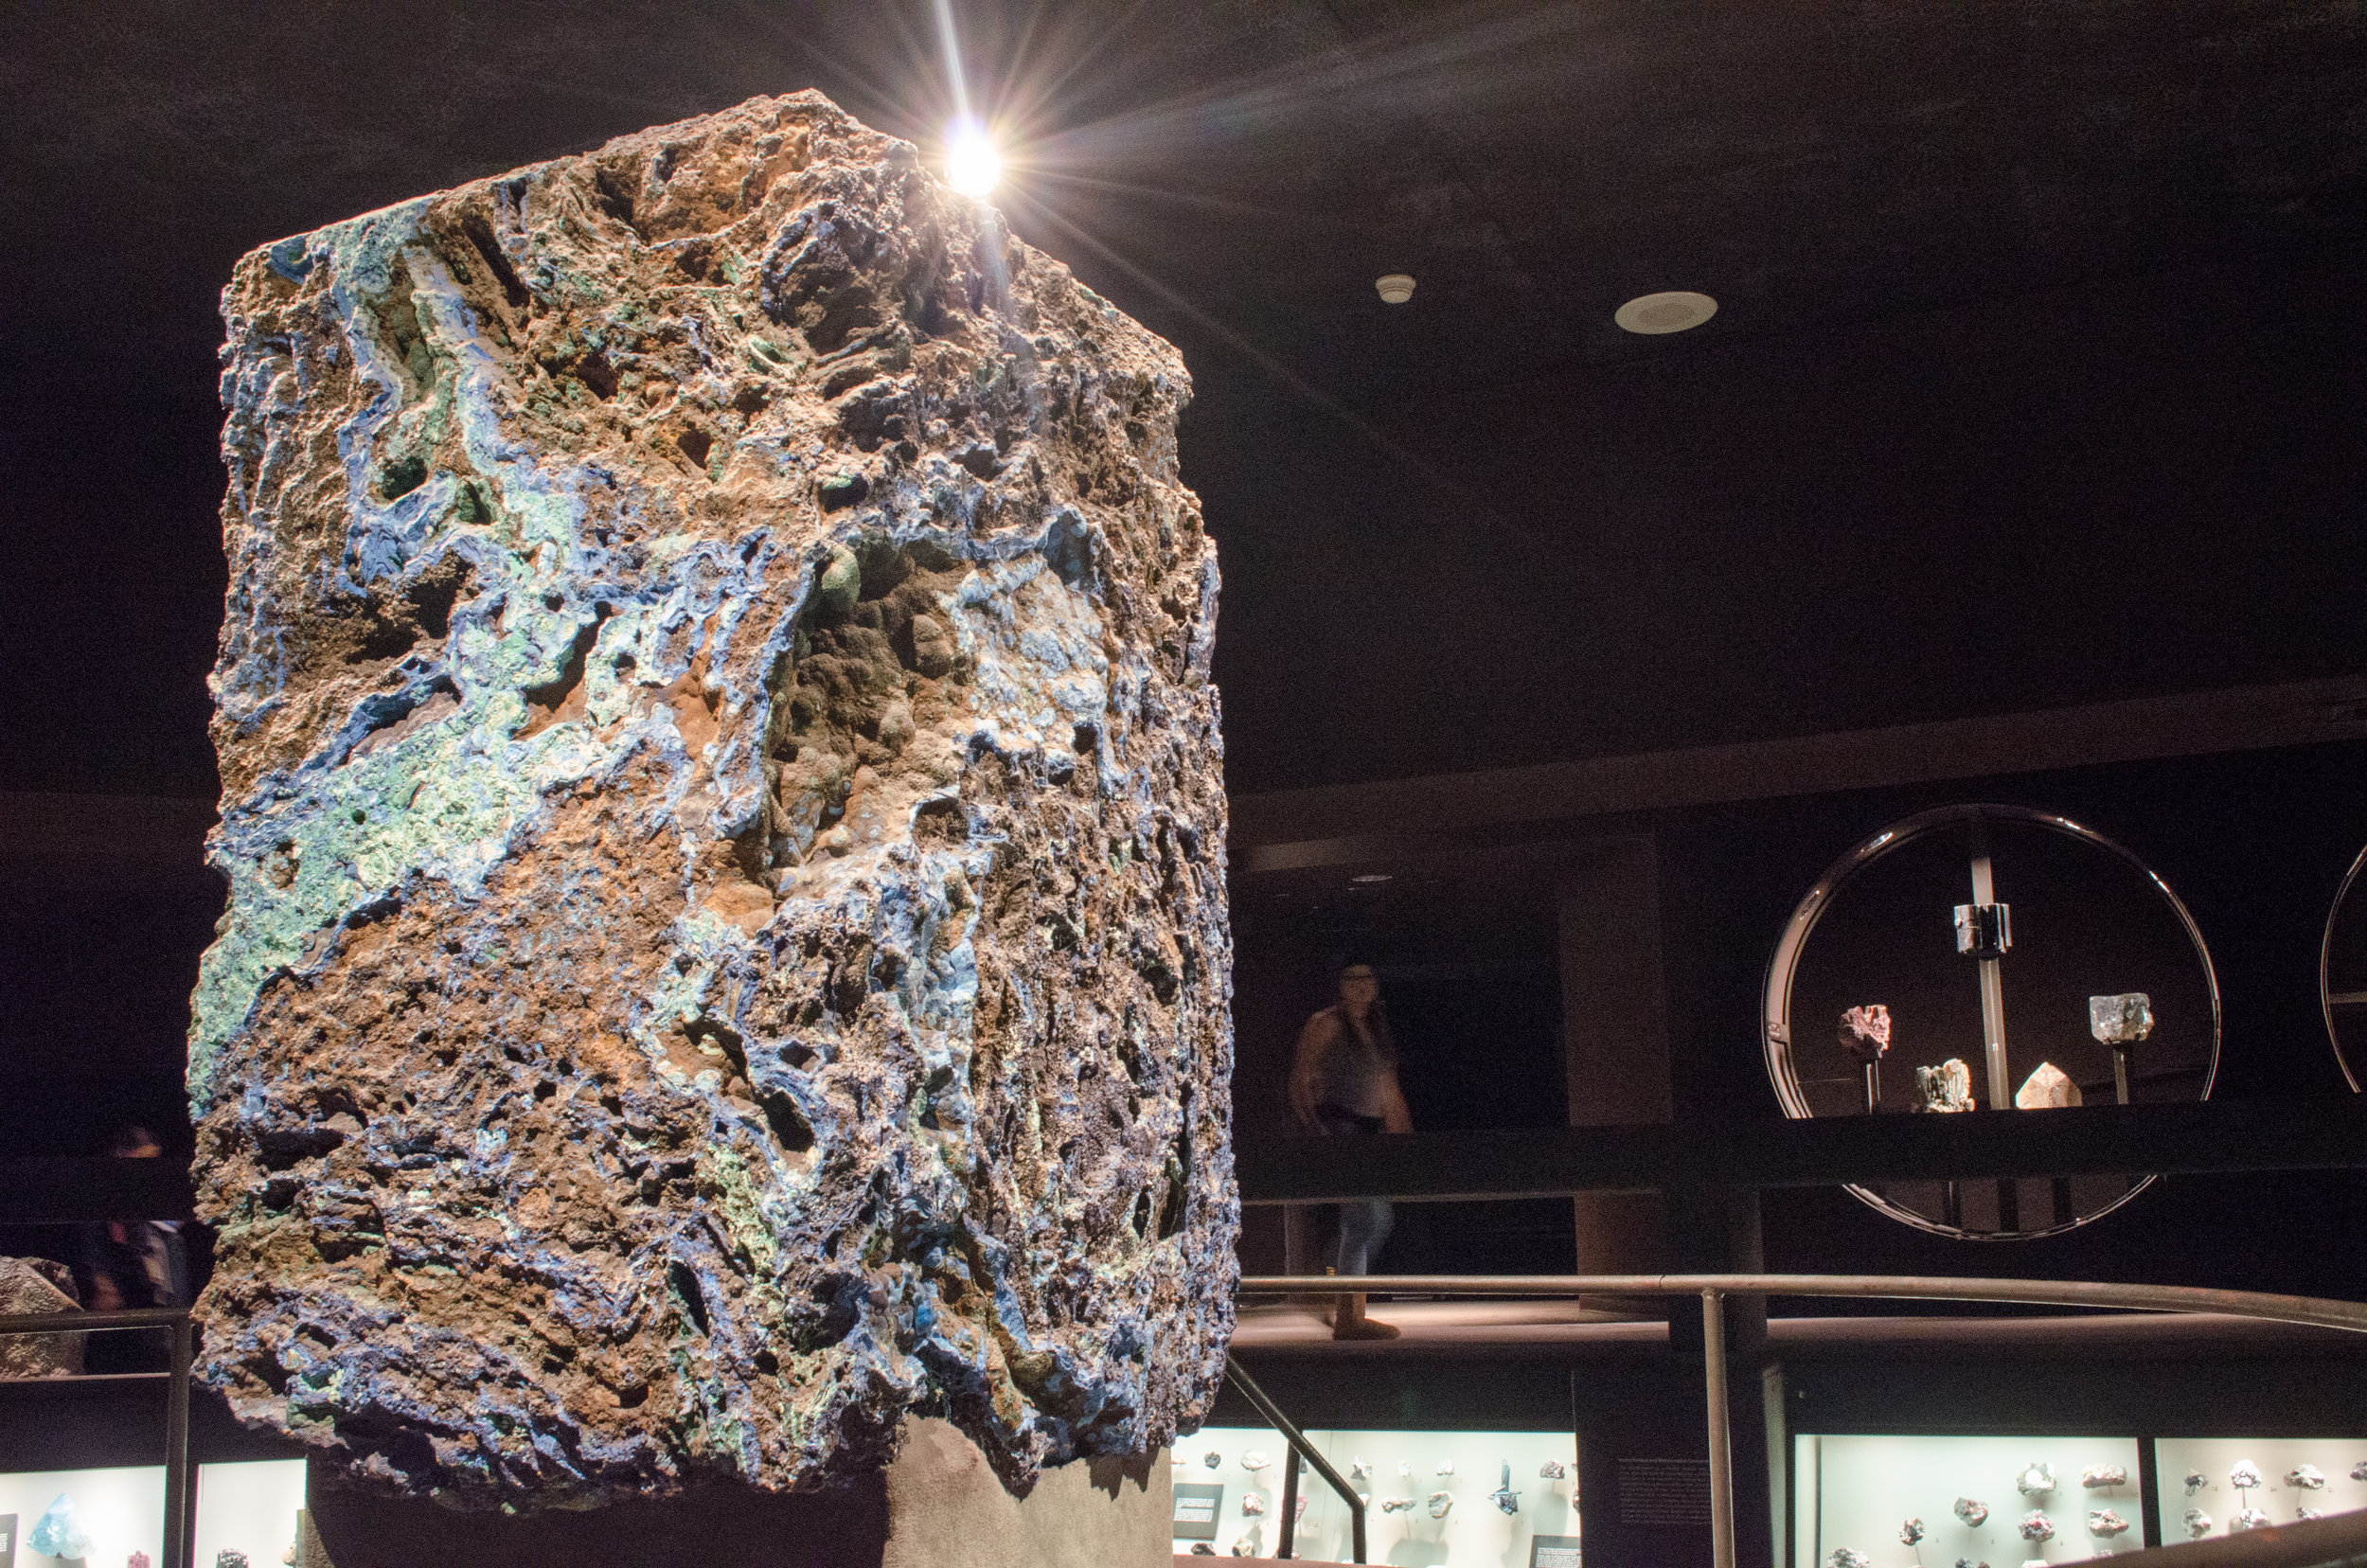 Tour of Halls of Gems and Minerals with geologist Jasmine Bayron - March 25